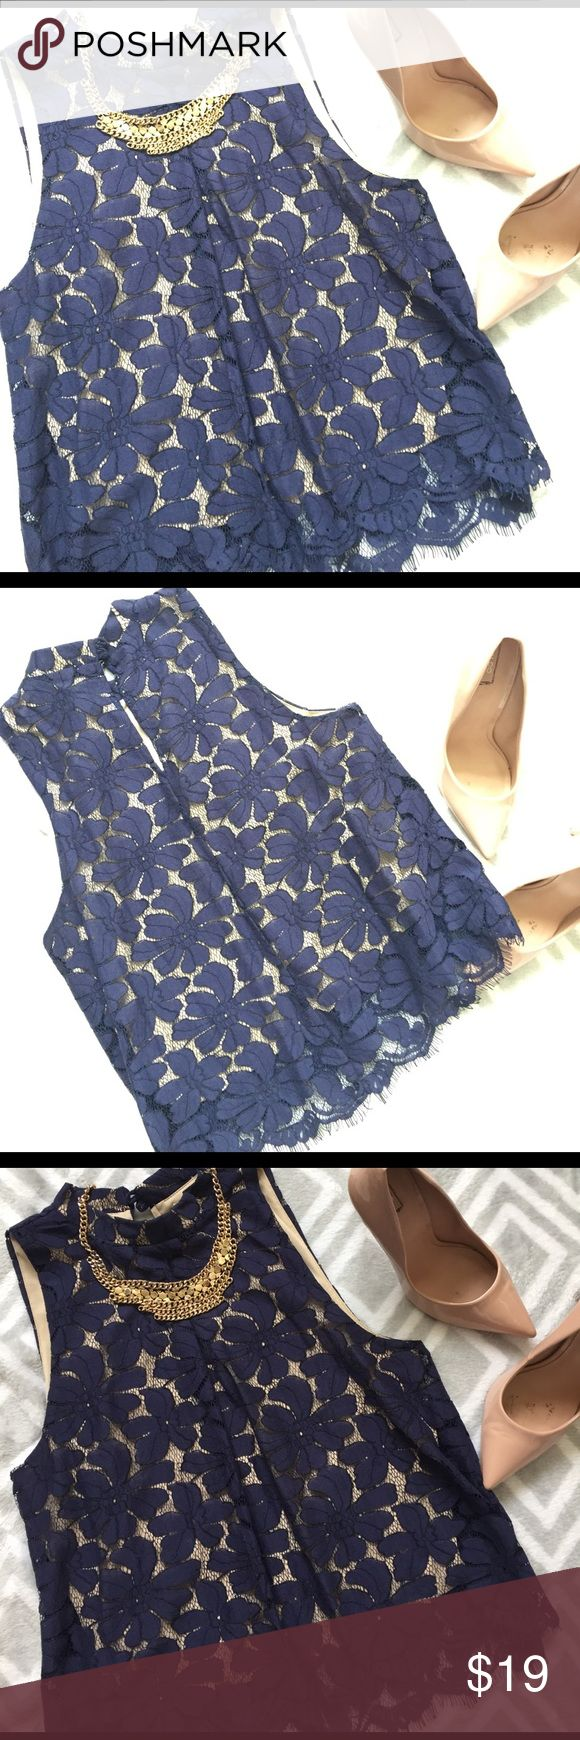 *NWOT* Sleeveless Navy Blouse Floral Lace Sleeveless Navy Blouse Floral Lace with Nude Underlay/Lining. Cotton Nylon Rayon Blend with Poly lining. I think this color always looks so pretty with these blush stilettos! Tops Blouses